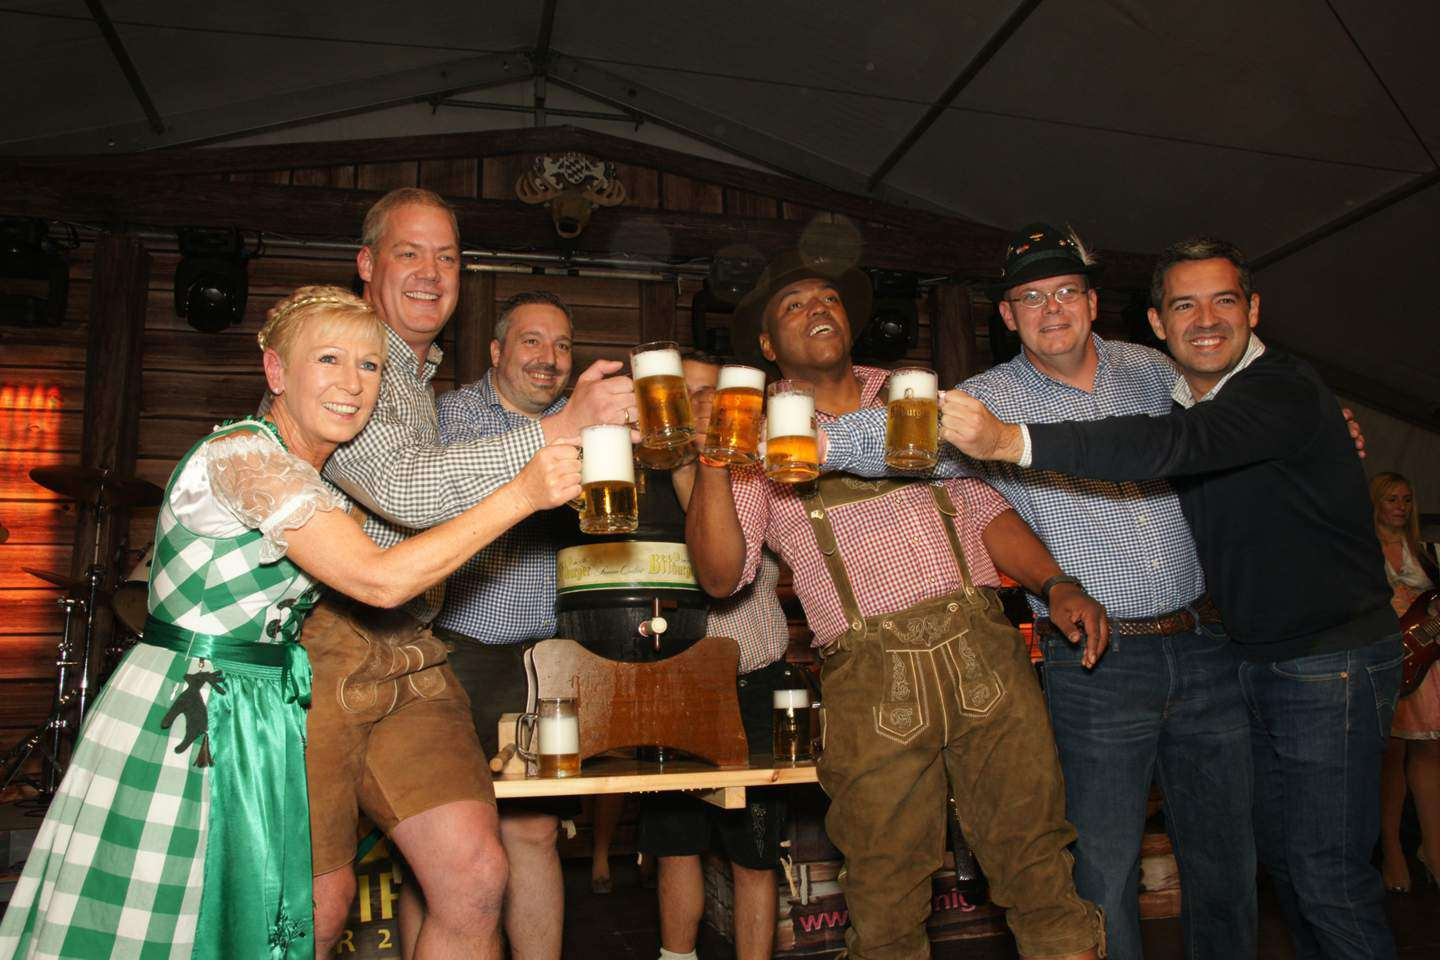 congress-center-ramstein-oktoberfest-galerie-